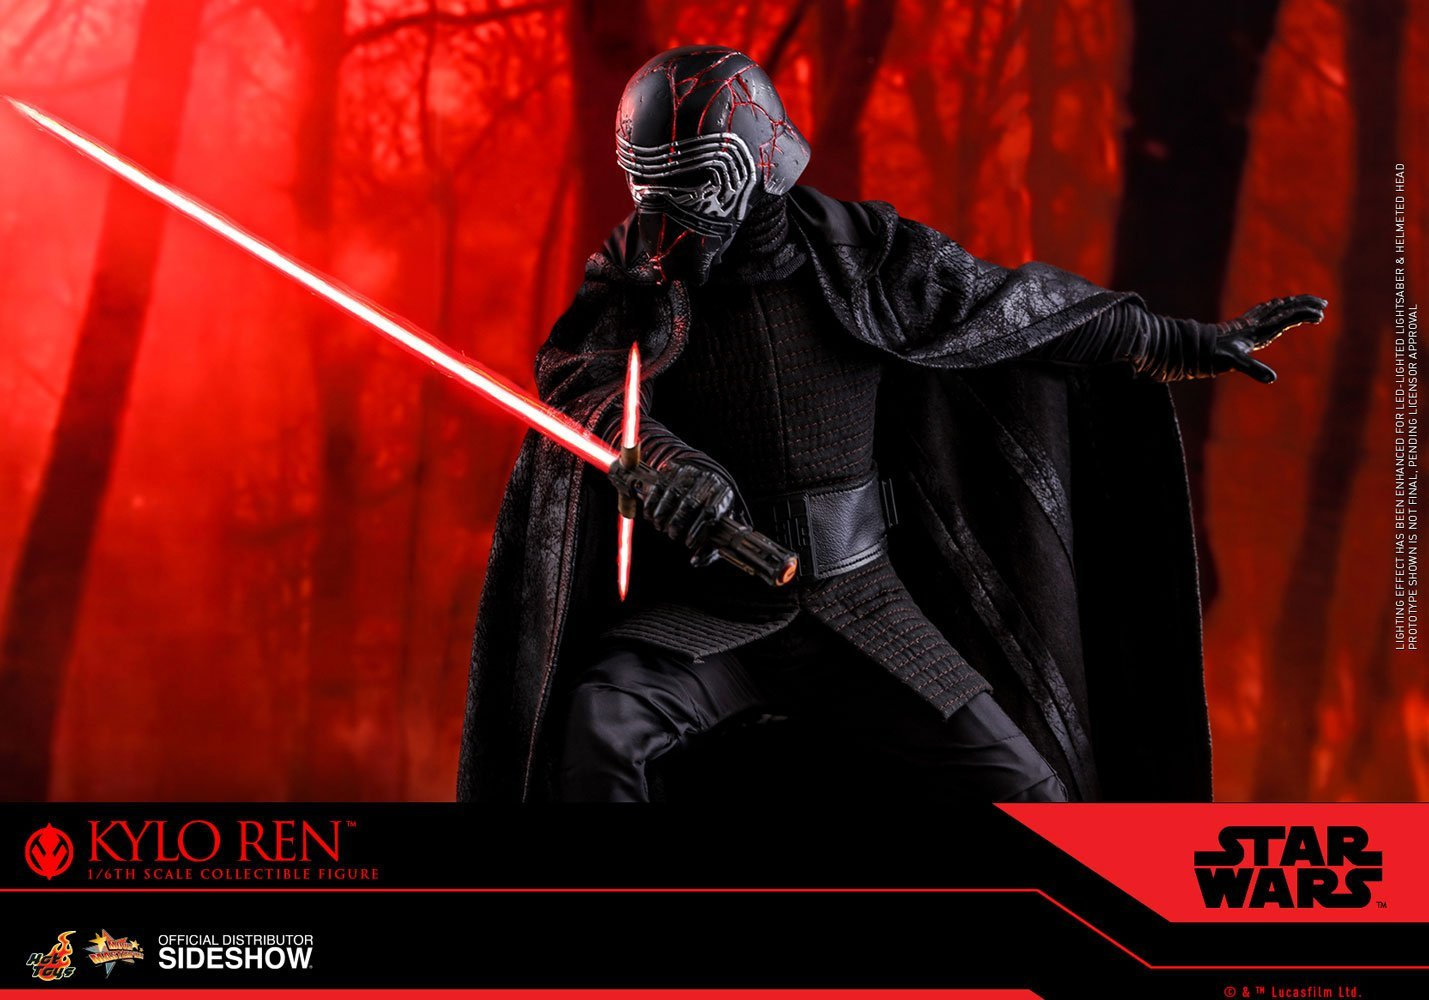 Hot Toys MMS560 1//6 Scale Star Wars The Rise of Skywalker Kylo Ren Action Figure